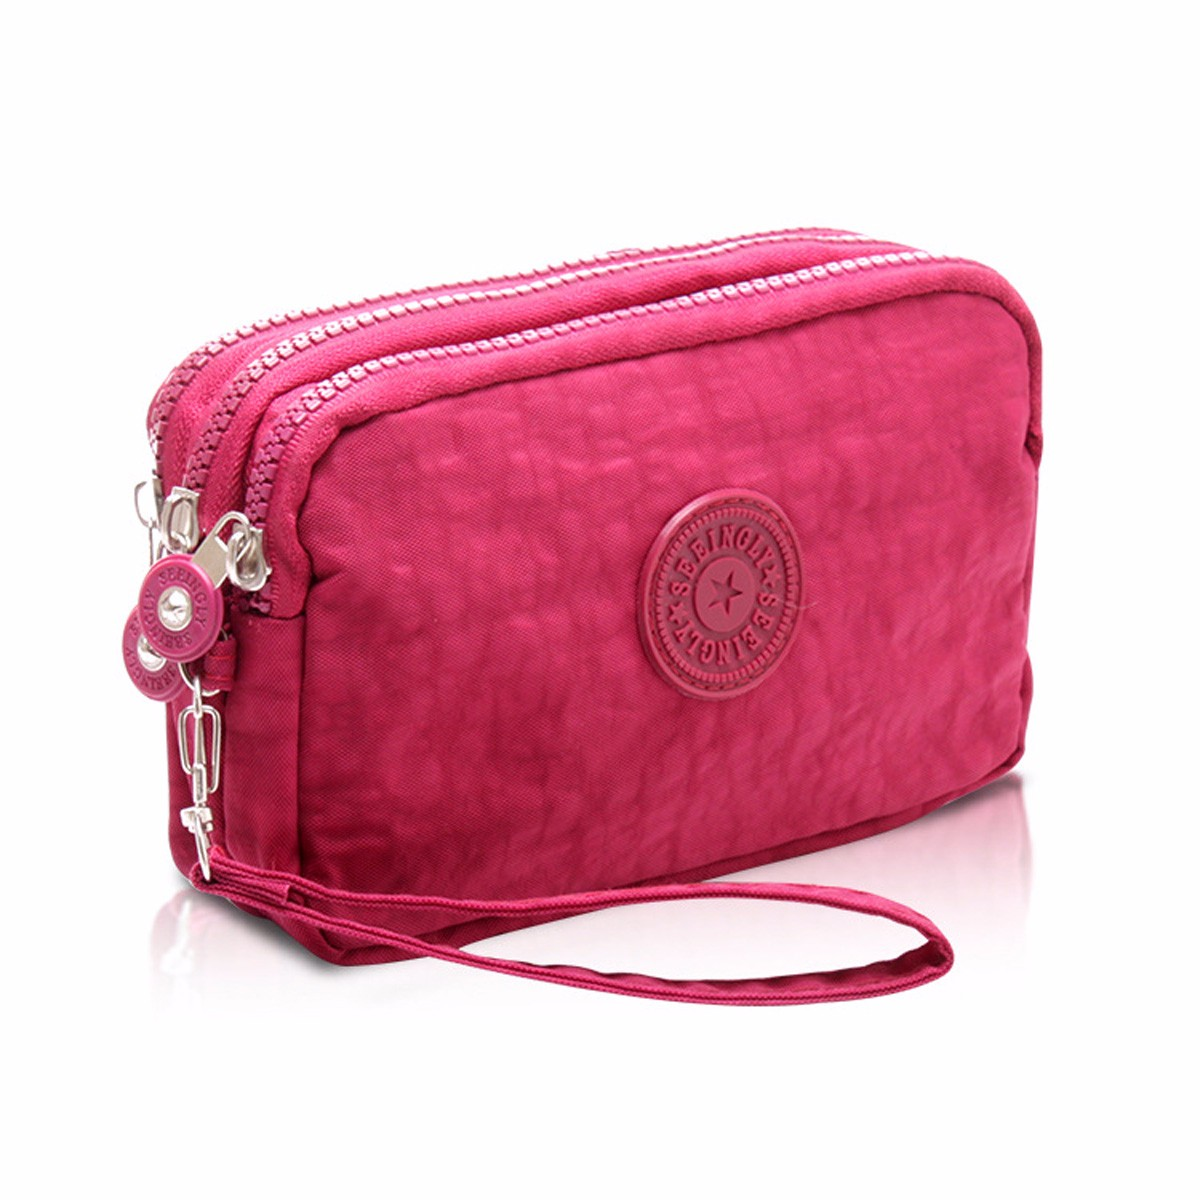 New Coin Purse Women Portabe Mobile Phone Bag Fashion Small Wallet Card Holder MultifunctionThree Zippers Mini Canvas Pouch